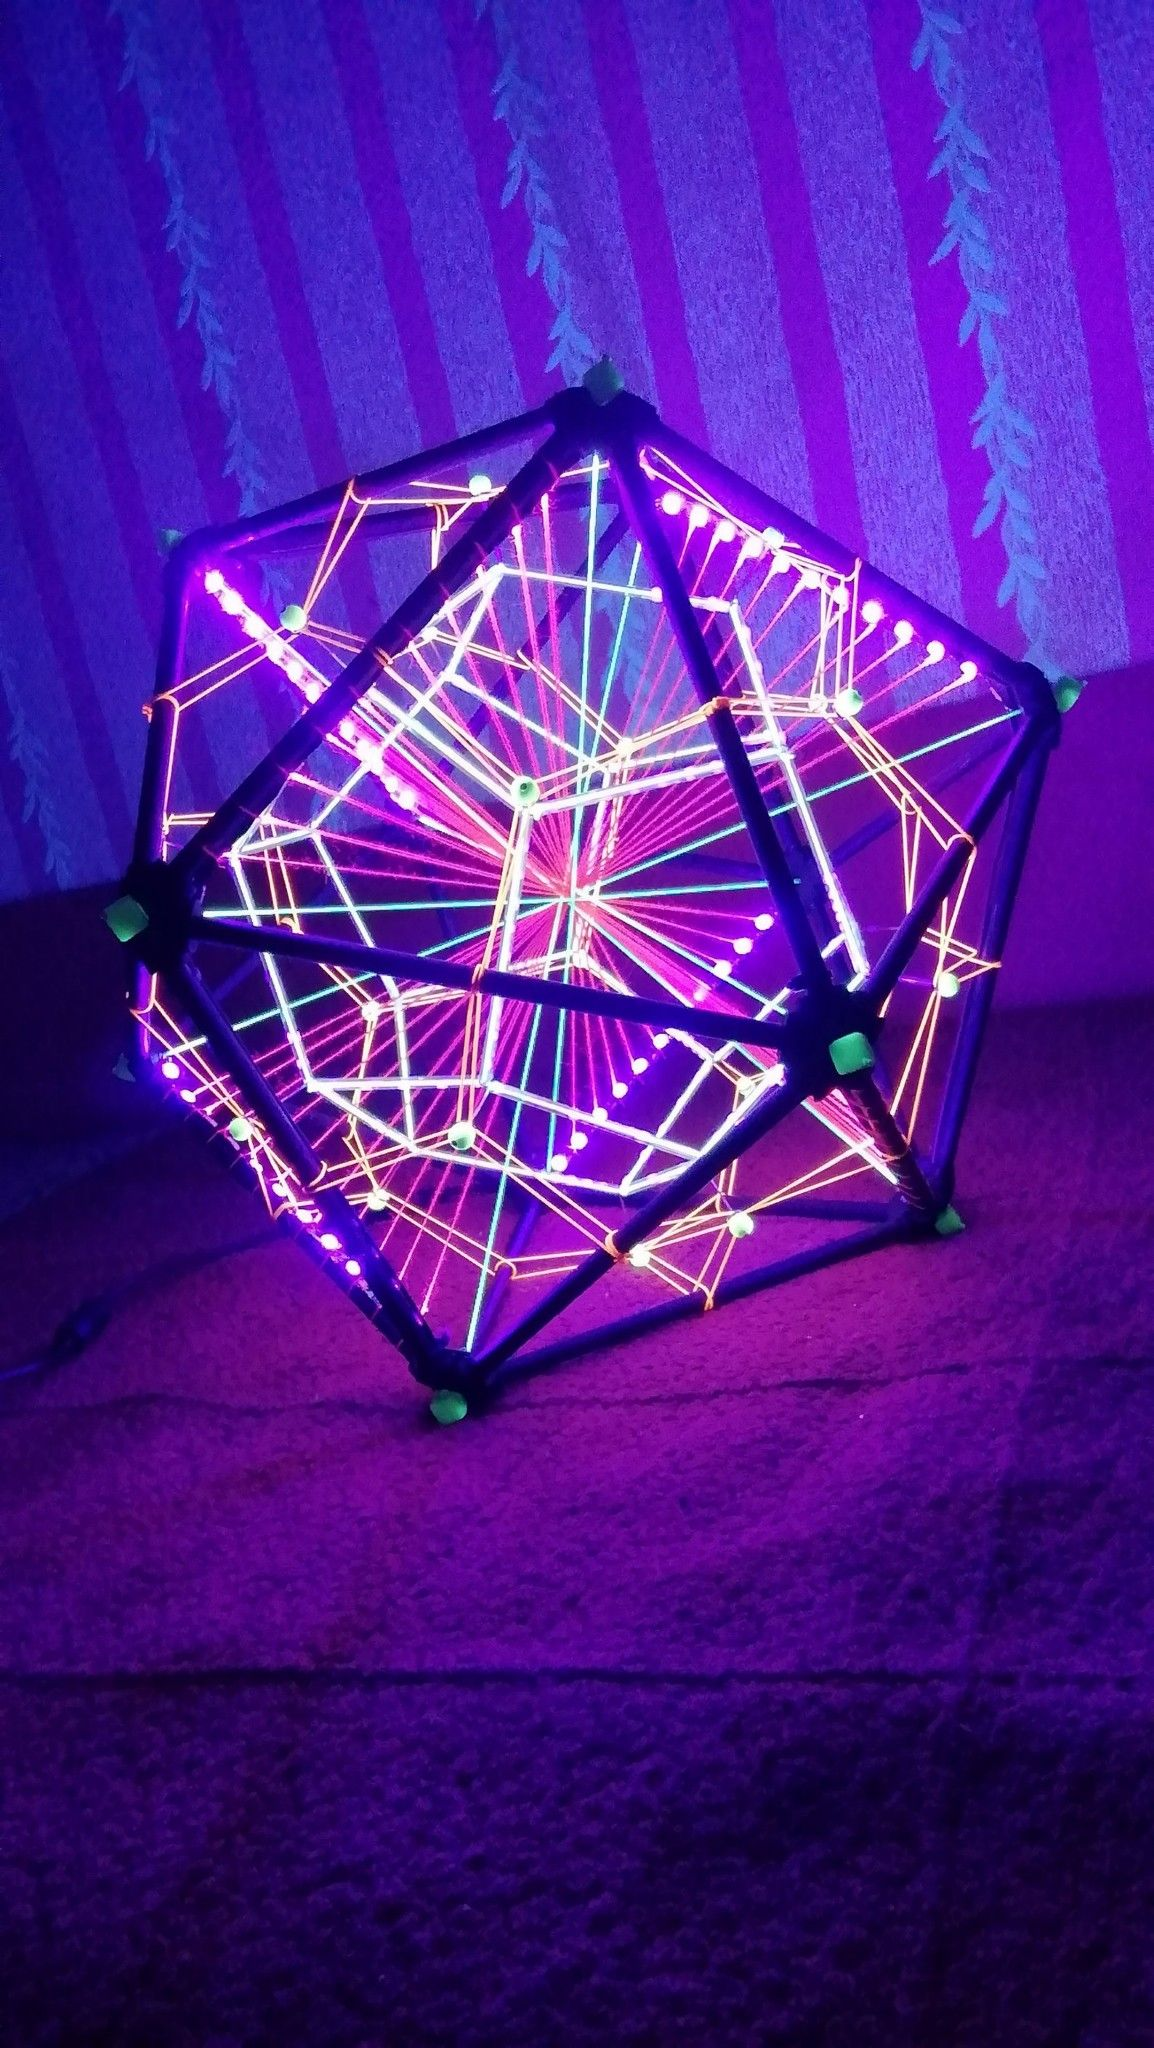 Led Fluorescent Decorative Icosahedron Lighting Art Object For Psychedelic Night Events And Parties Multidimensional Sacred Geometry Decor Sacred Geometry Art Object Sacred Geometry Art